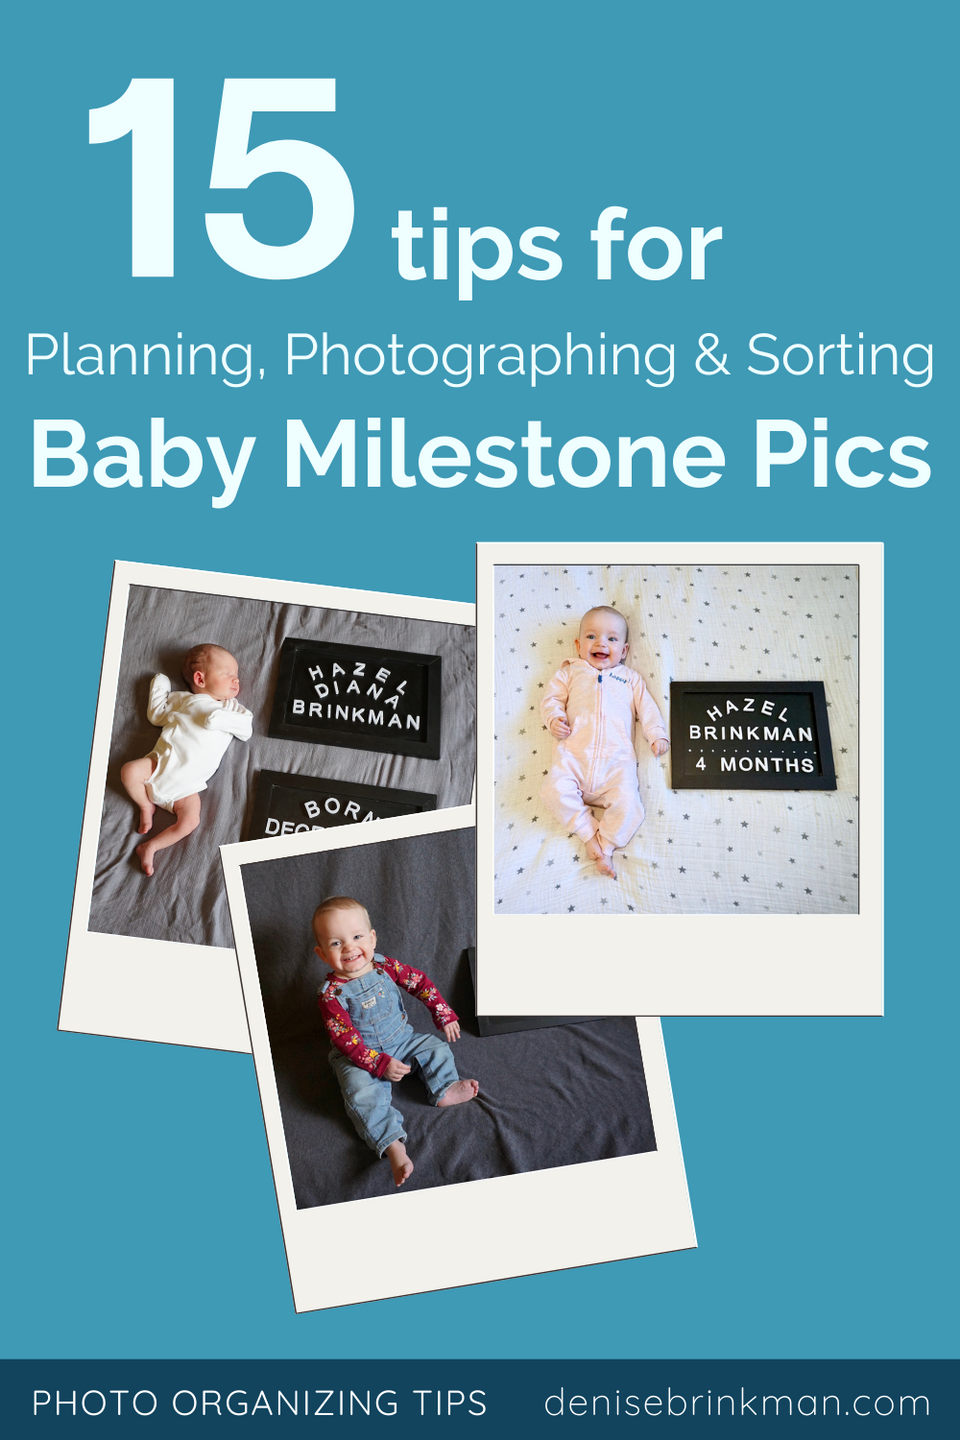 15 Tips for taking monthly milestone photos of your baby